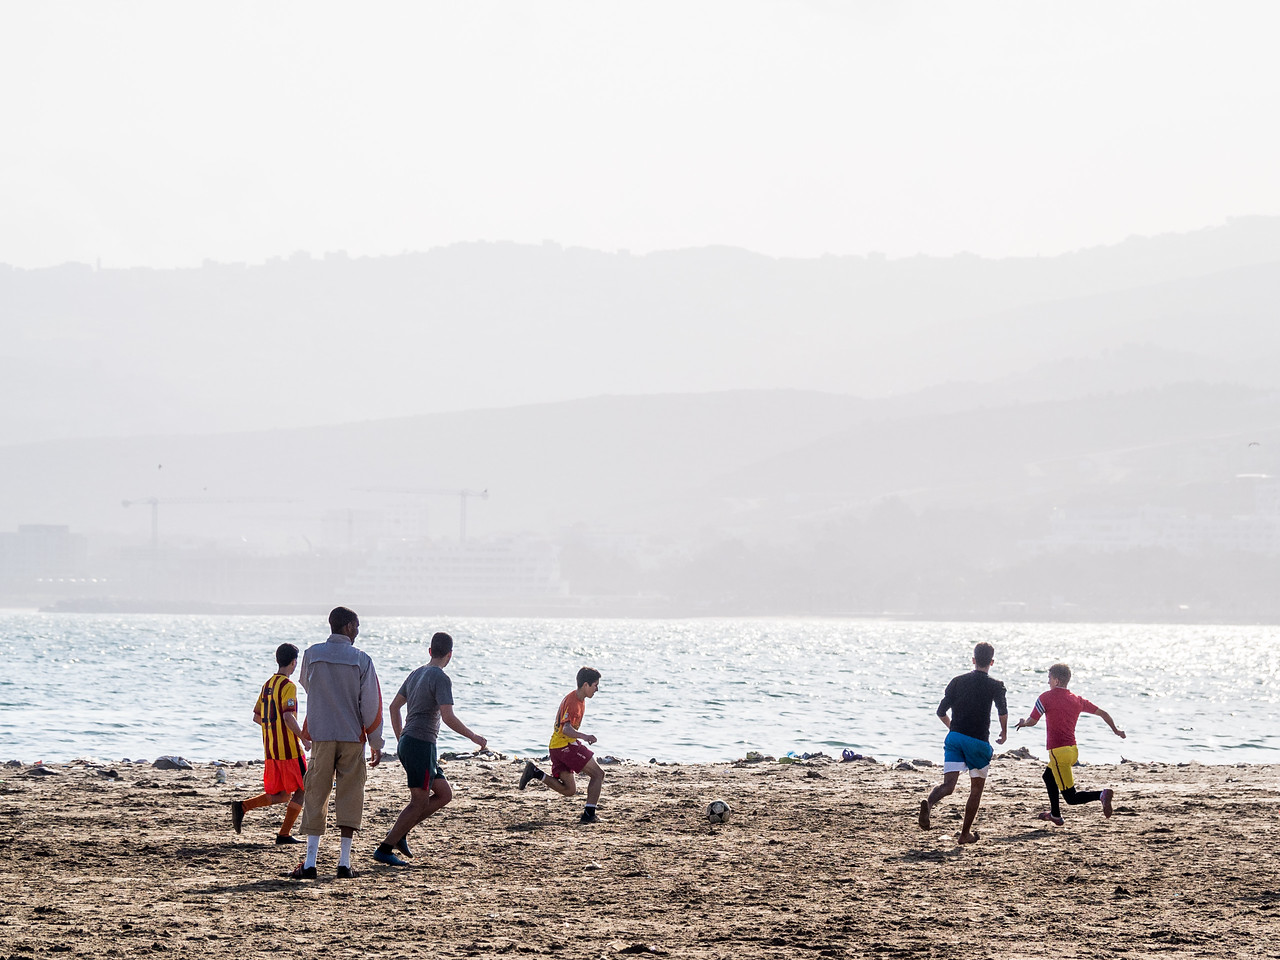 Football on the Beach, Tangiers, Morocco